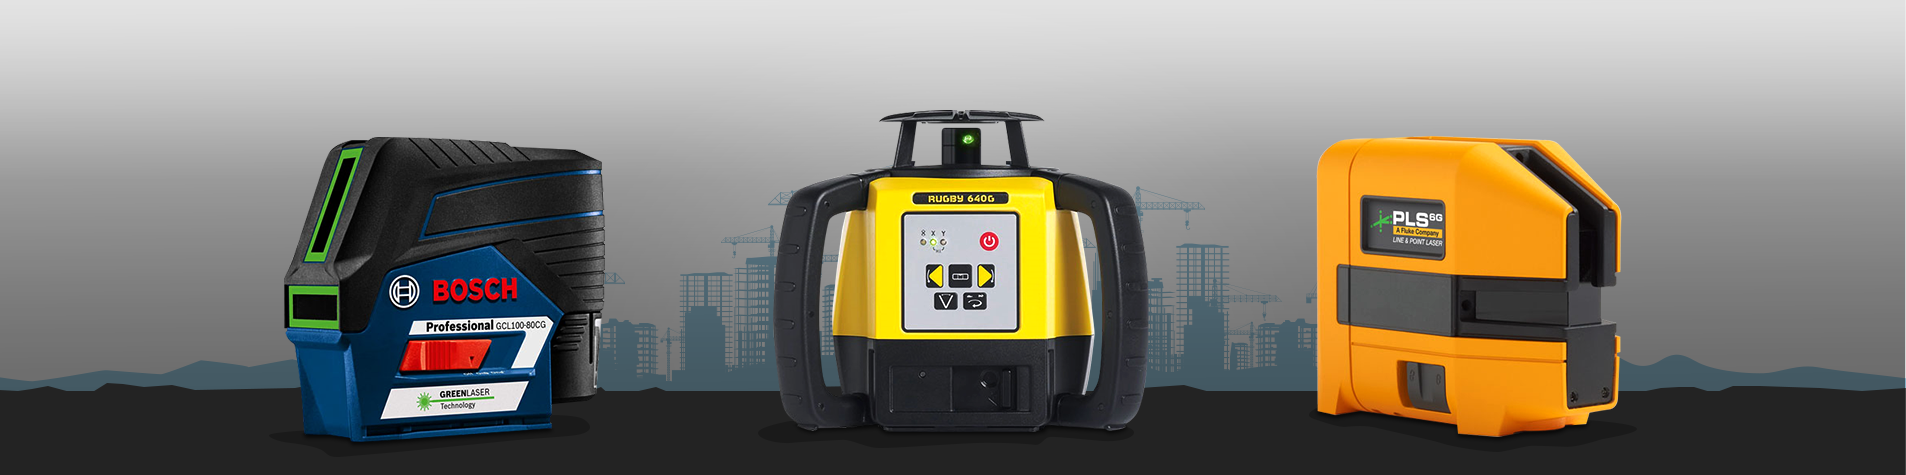 Construction Lasers, Laser Levels, Rotary Lasers, Smart